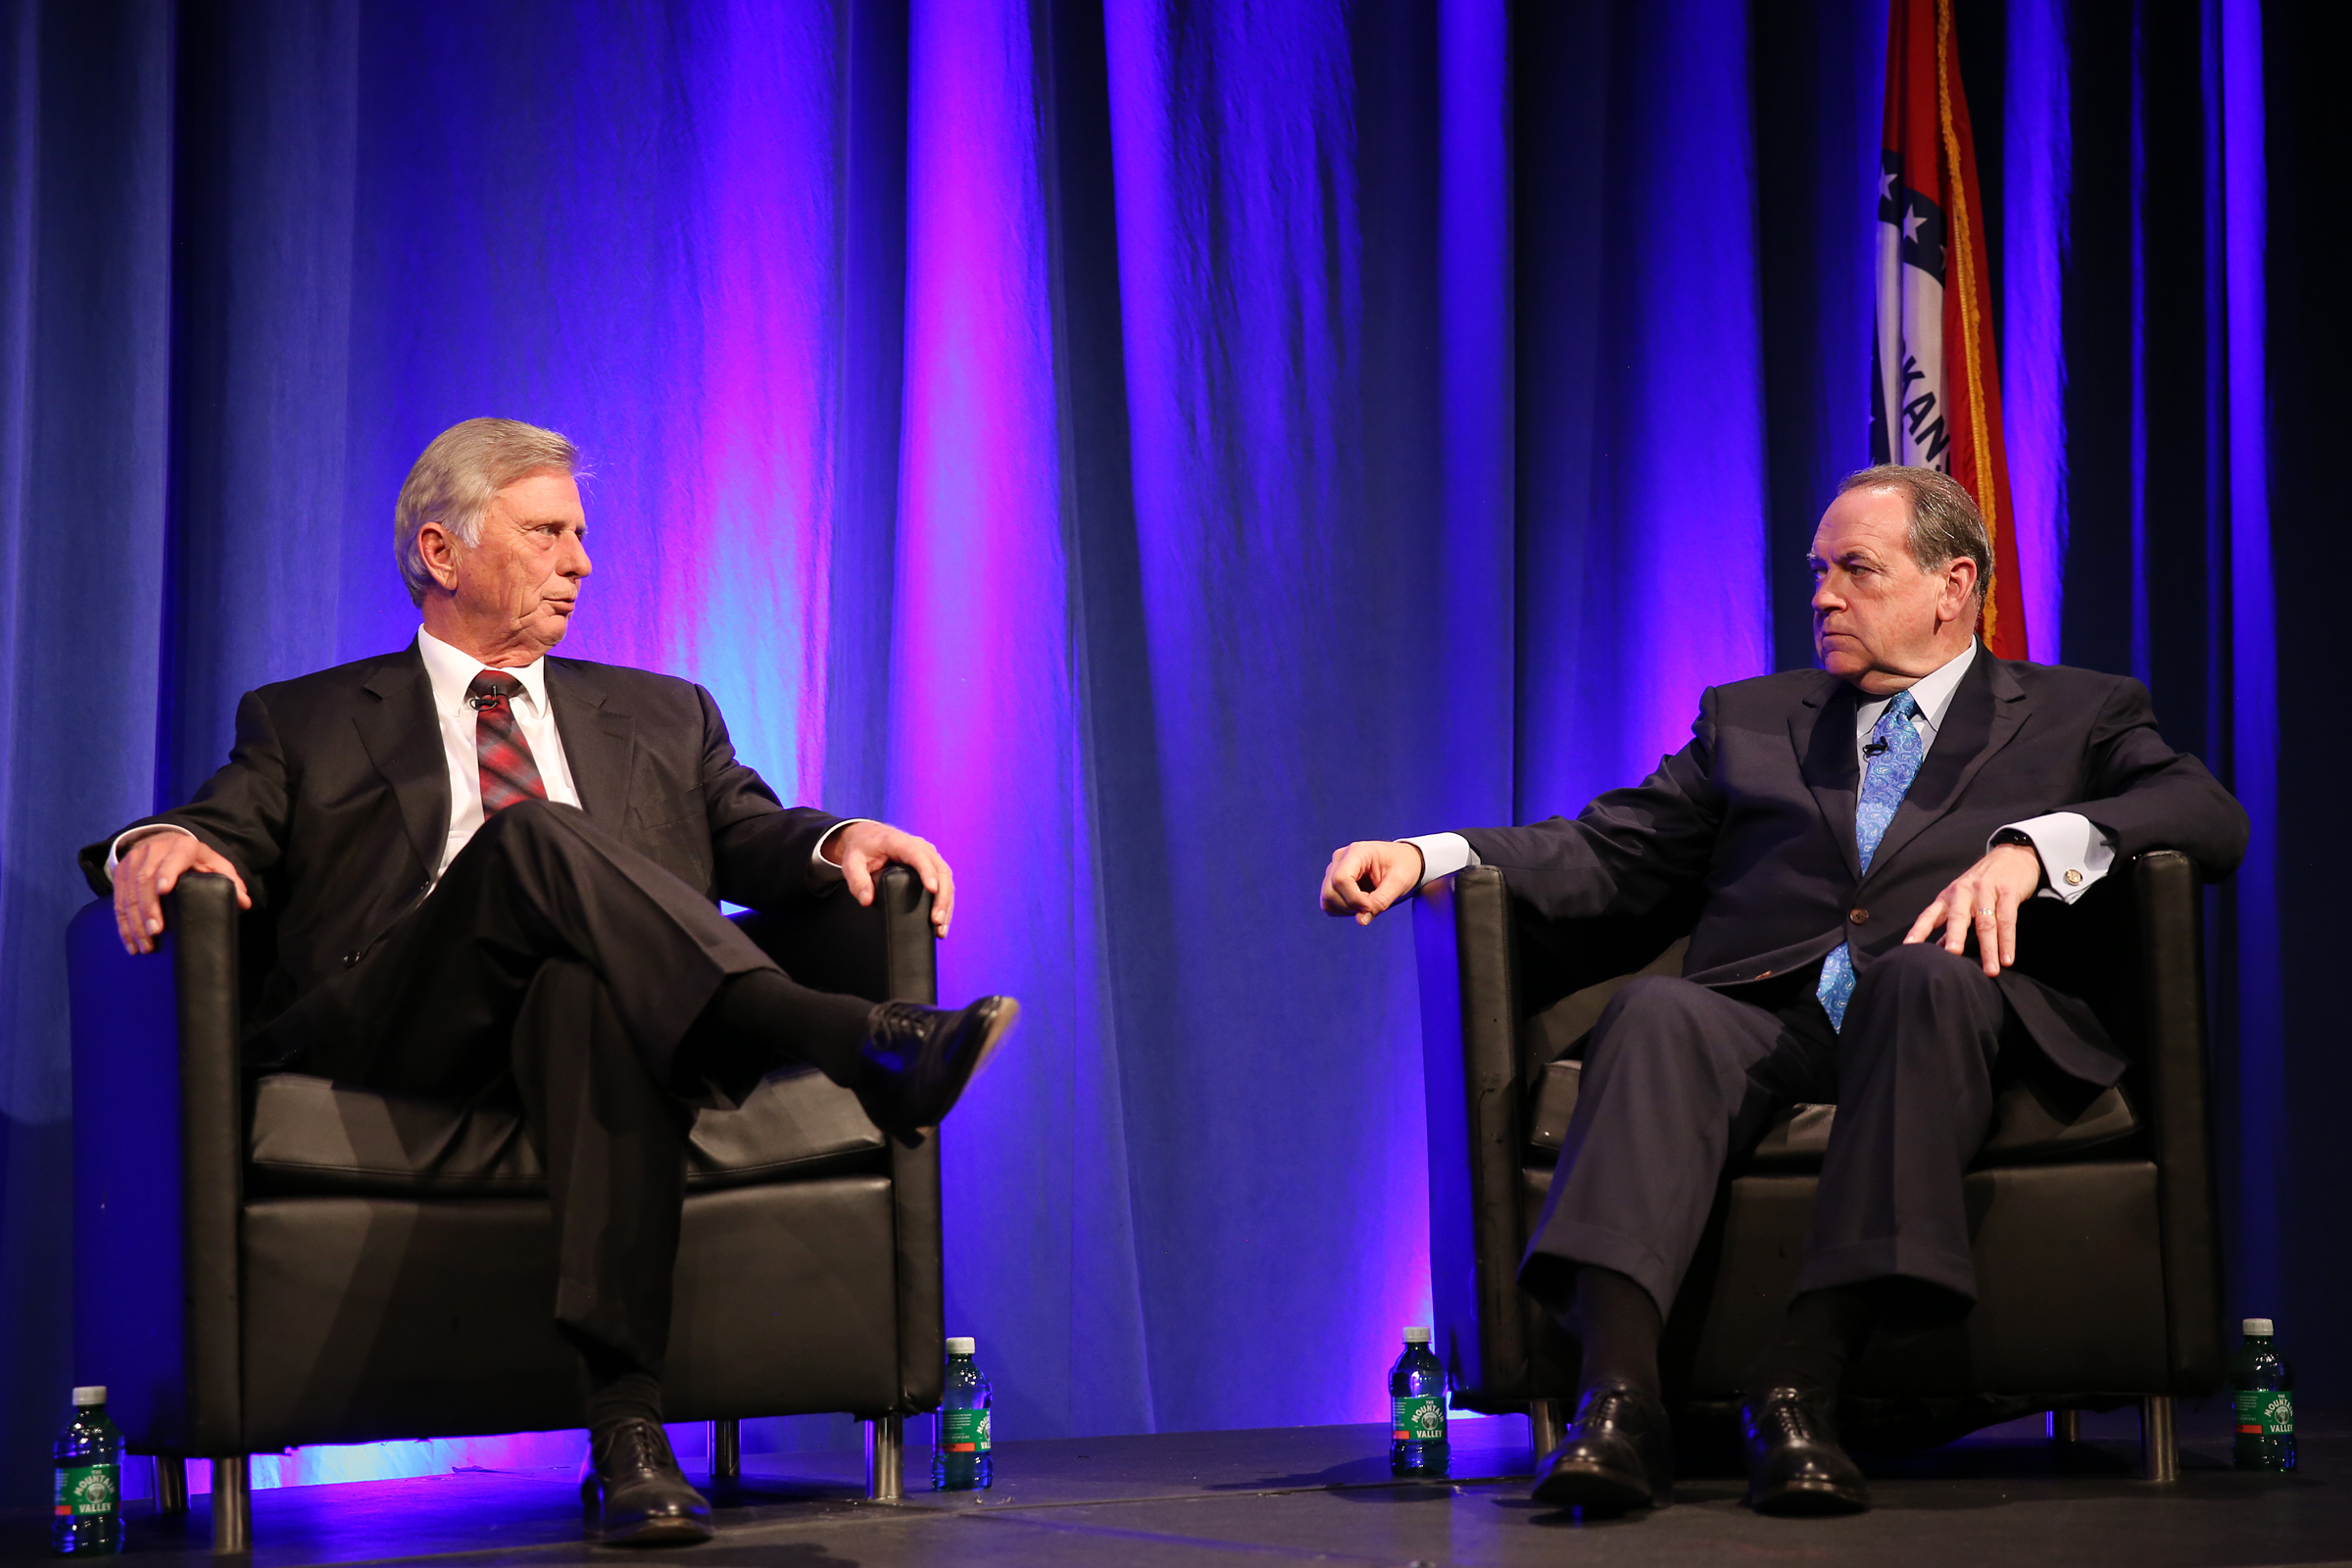 Former governors Mike Huckabee, Mike Beebe